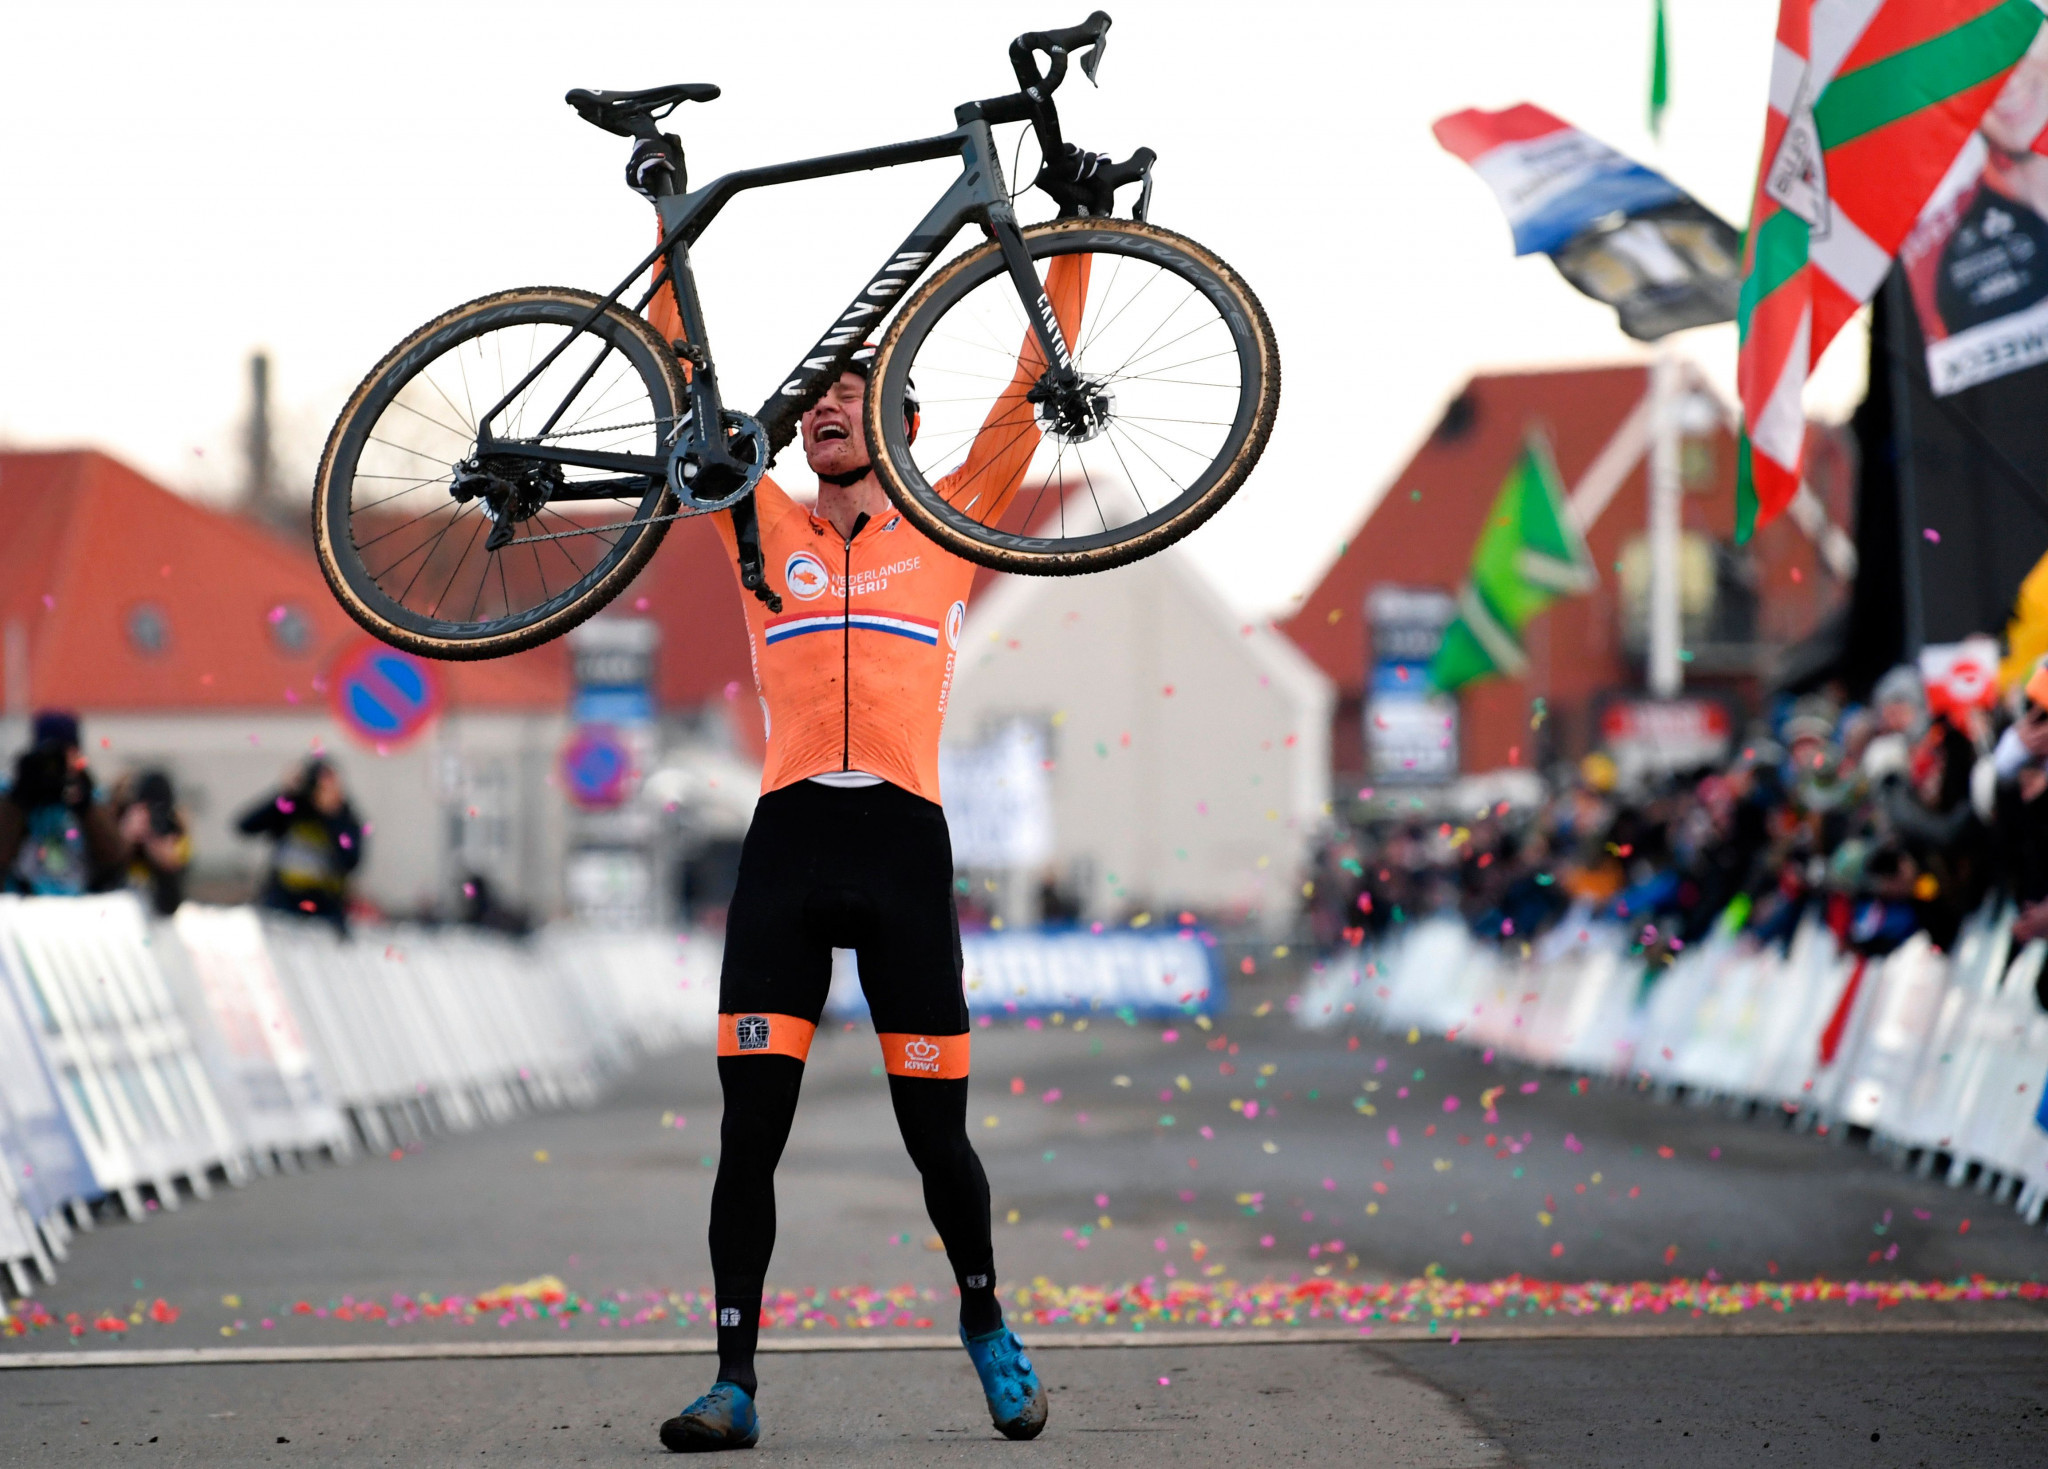 Van Der Poel victorious at UCI Cyclo-Cross World Championships as unbeaten season continues